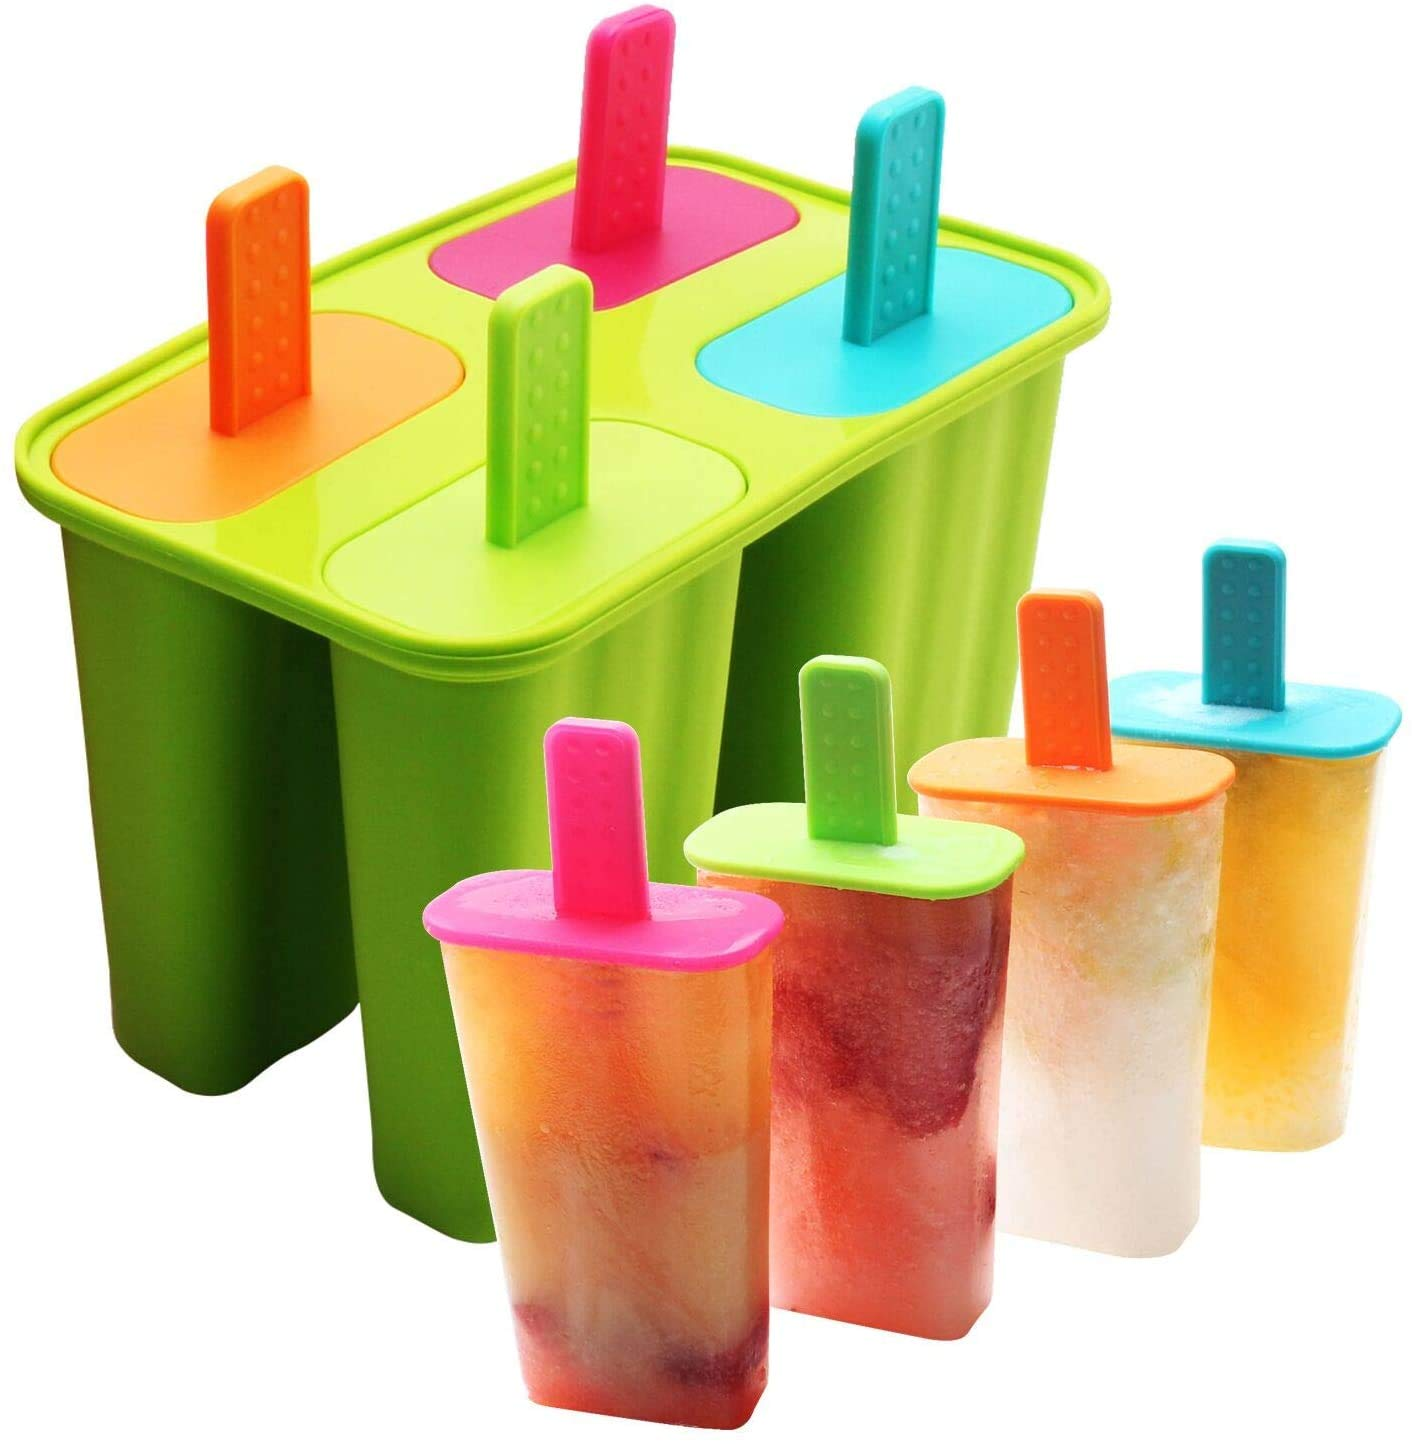 Silicone Popsicle Molds Ice Pop Molds Maker BPA Free - Set of 4 - Food Grade Ice Cream Moulds Ice Pops Shapes for Homemade Popsicle, Dishwasher Safe (Green)